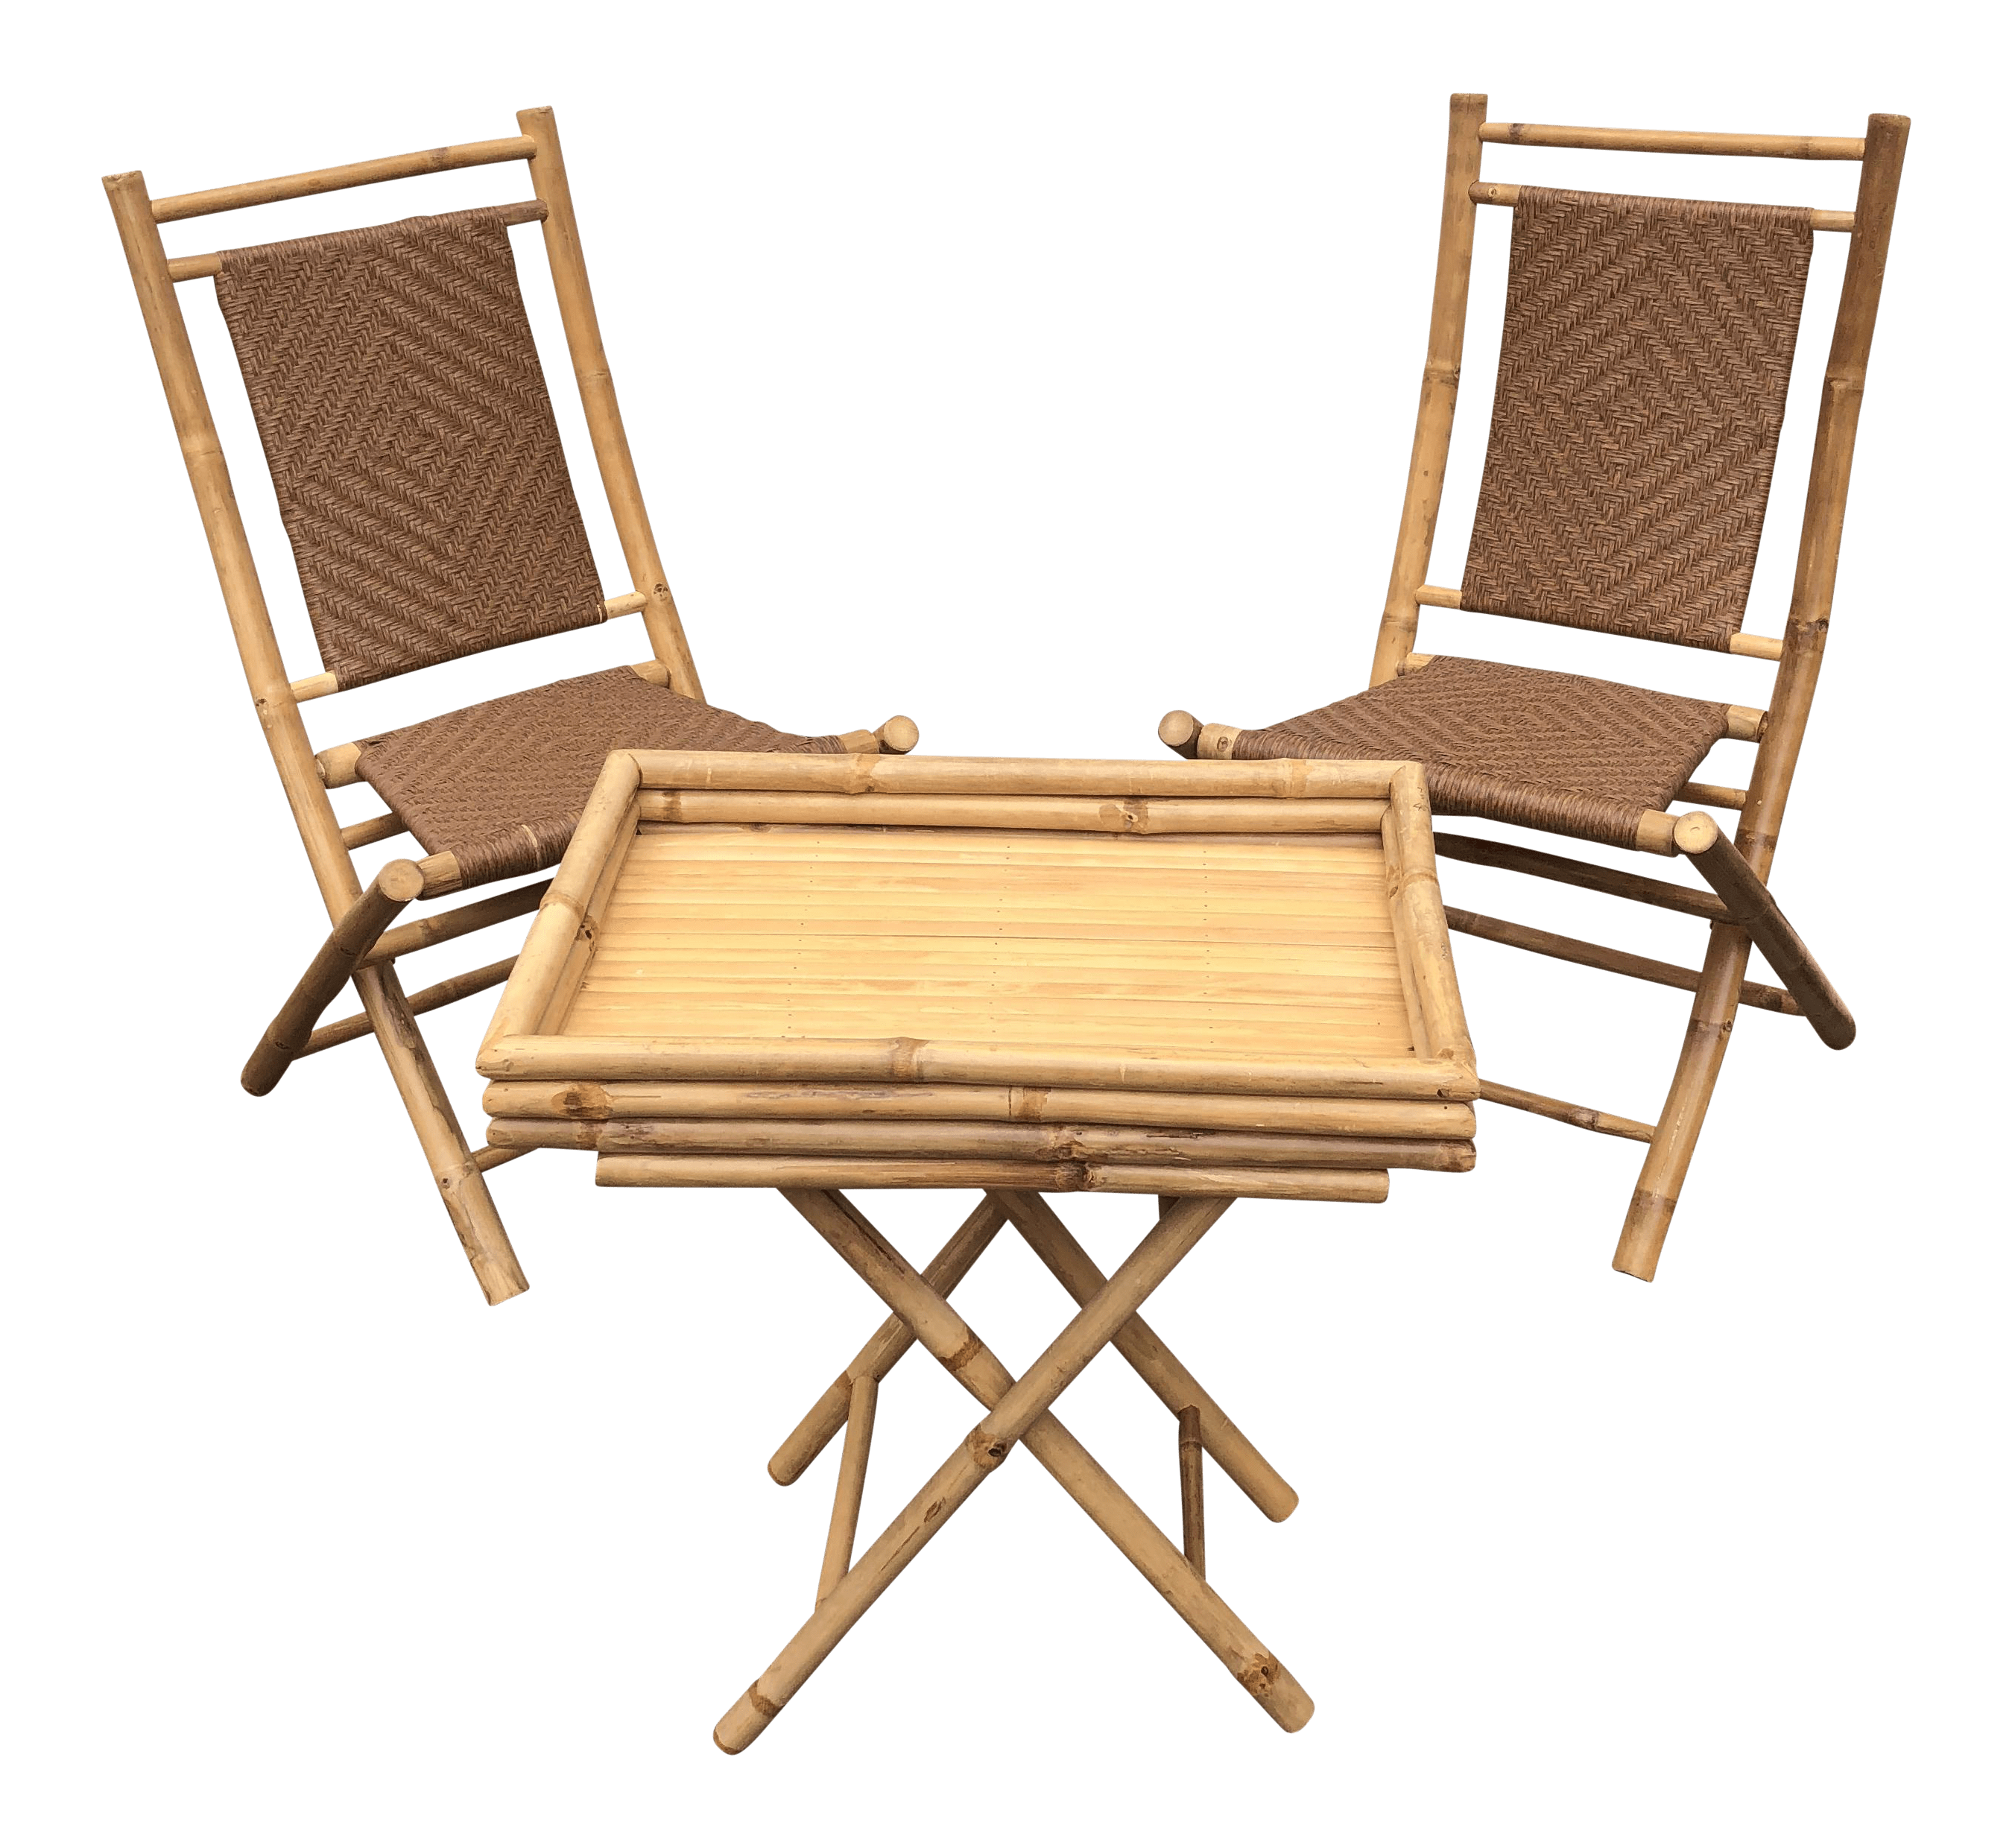 Bamboo Chairs Bamboo Chairs Tray Table Set Of 3